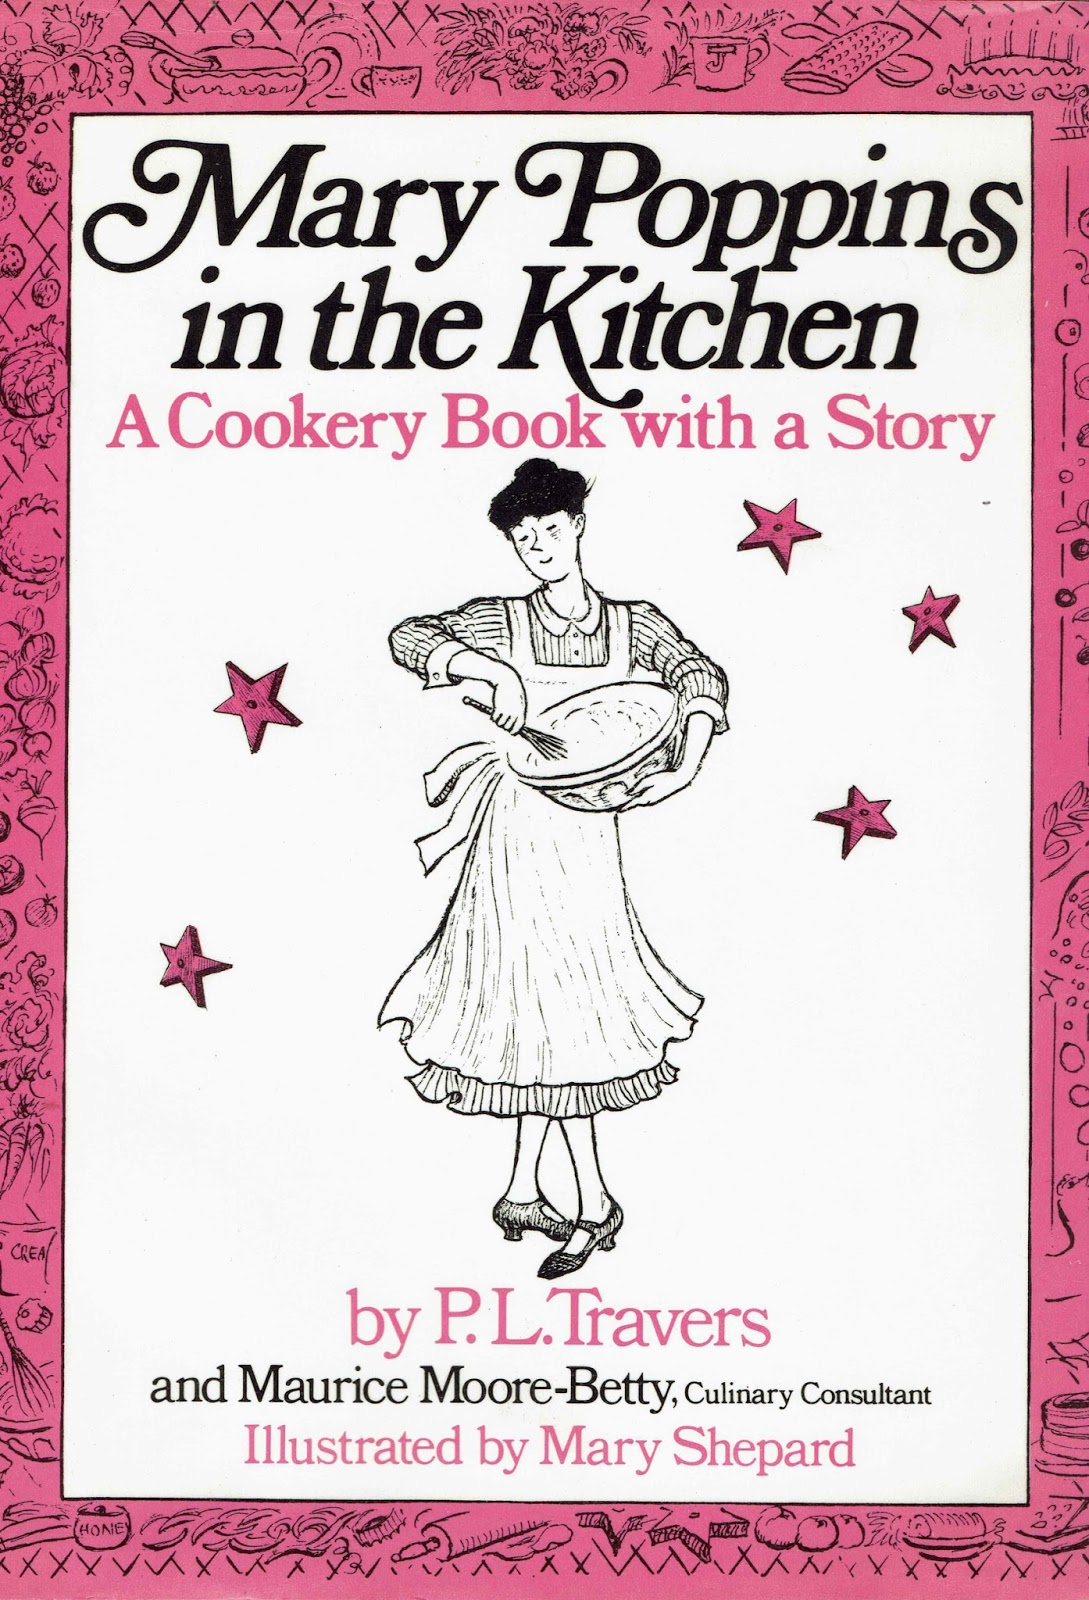 Mary Poppins In The Kitchen: A Cookery Book With A Story, P. L. Travers And  Maurice Moore Betty (culinary Consultant), Illustrated By Mary Shepard 1975  ... Design Ideas